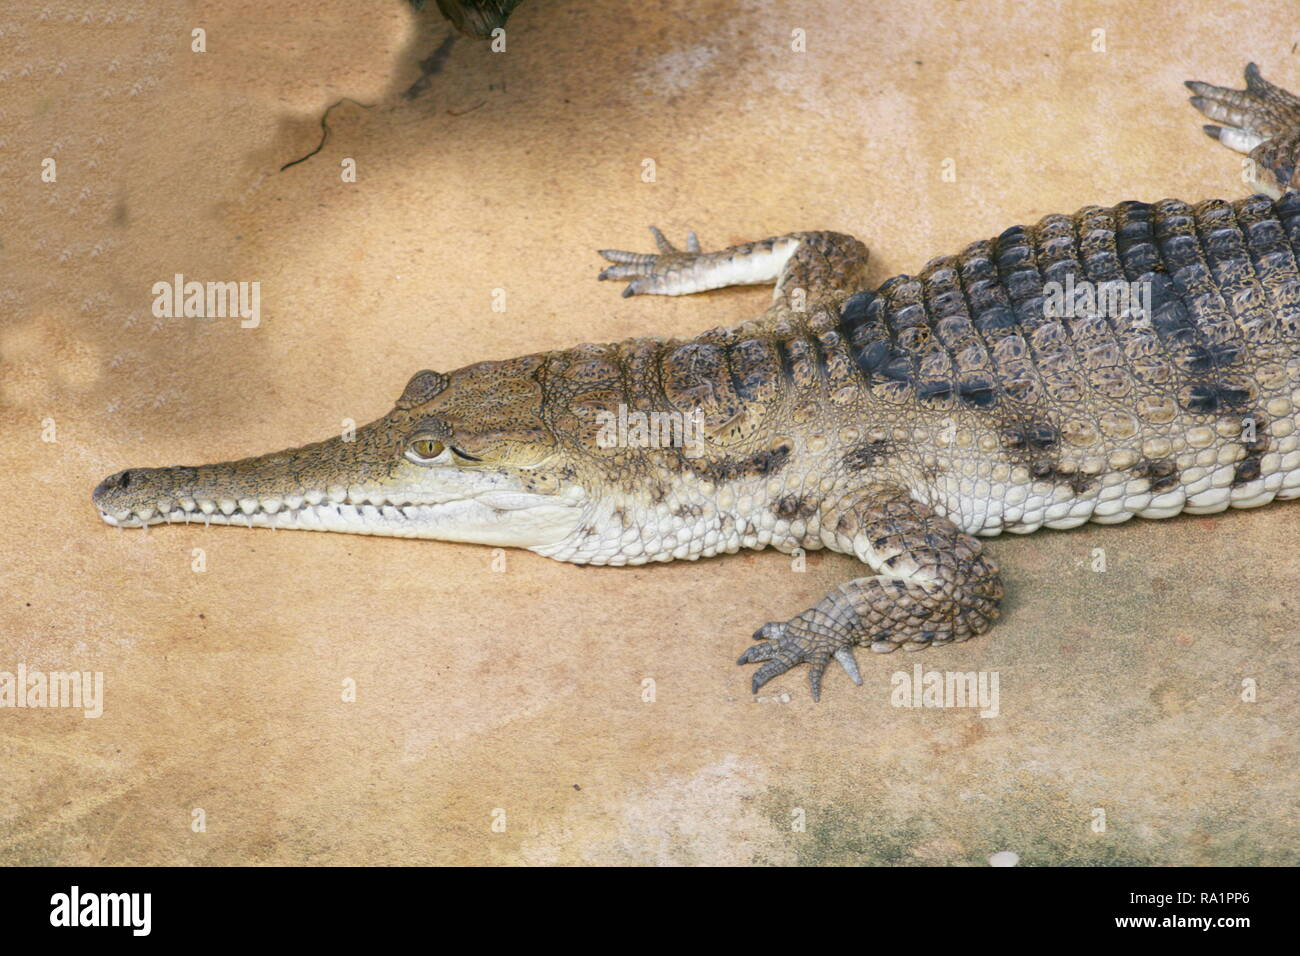 Detail view of a crocodile on the water tepid gestures - Stock Image